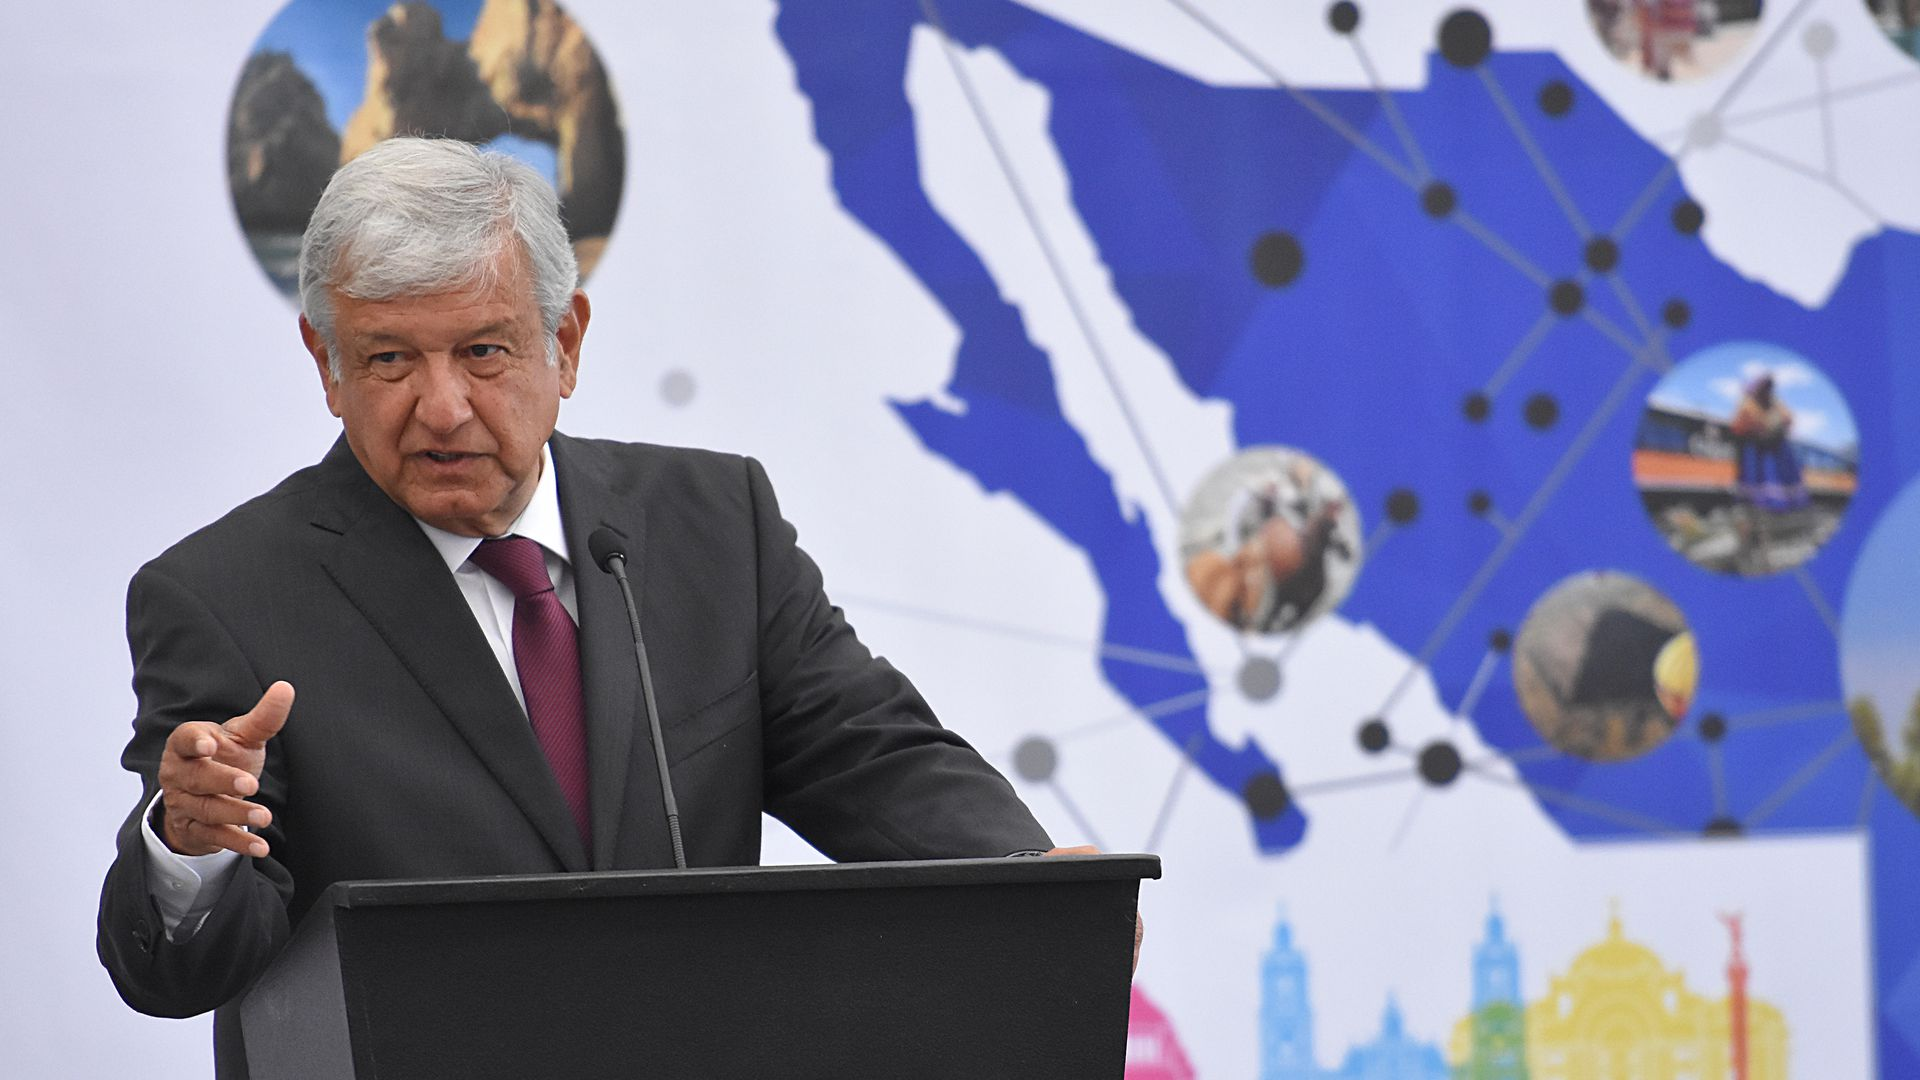 Andres Manuel Lopez Obrador presidential candidate of Mexico talks during the XVI edition of the National Forum of Tourism at Chapultepec Castle on May 07, 2018 in Mexico City, Mexico.